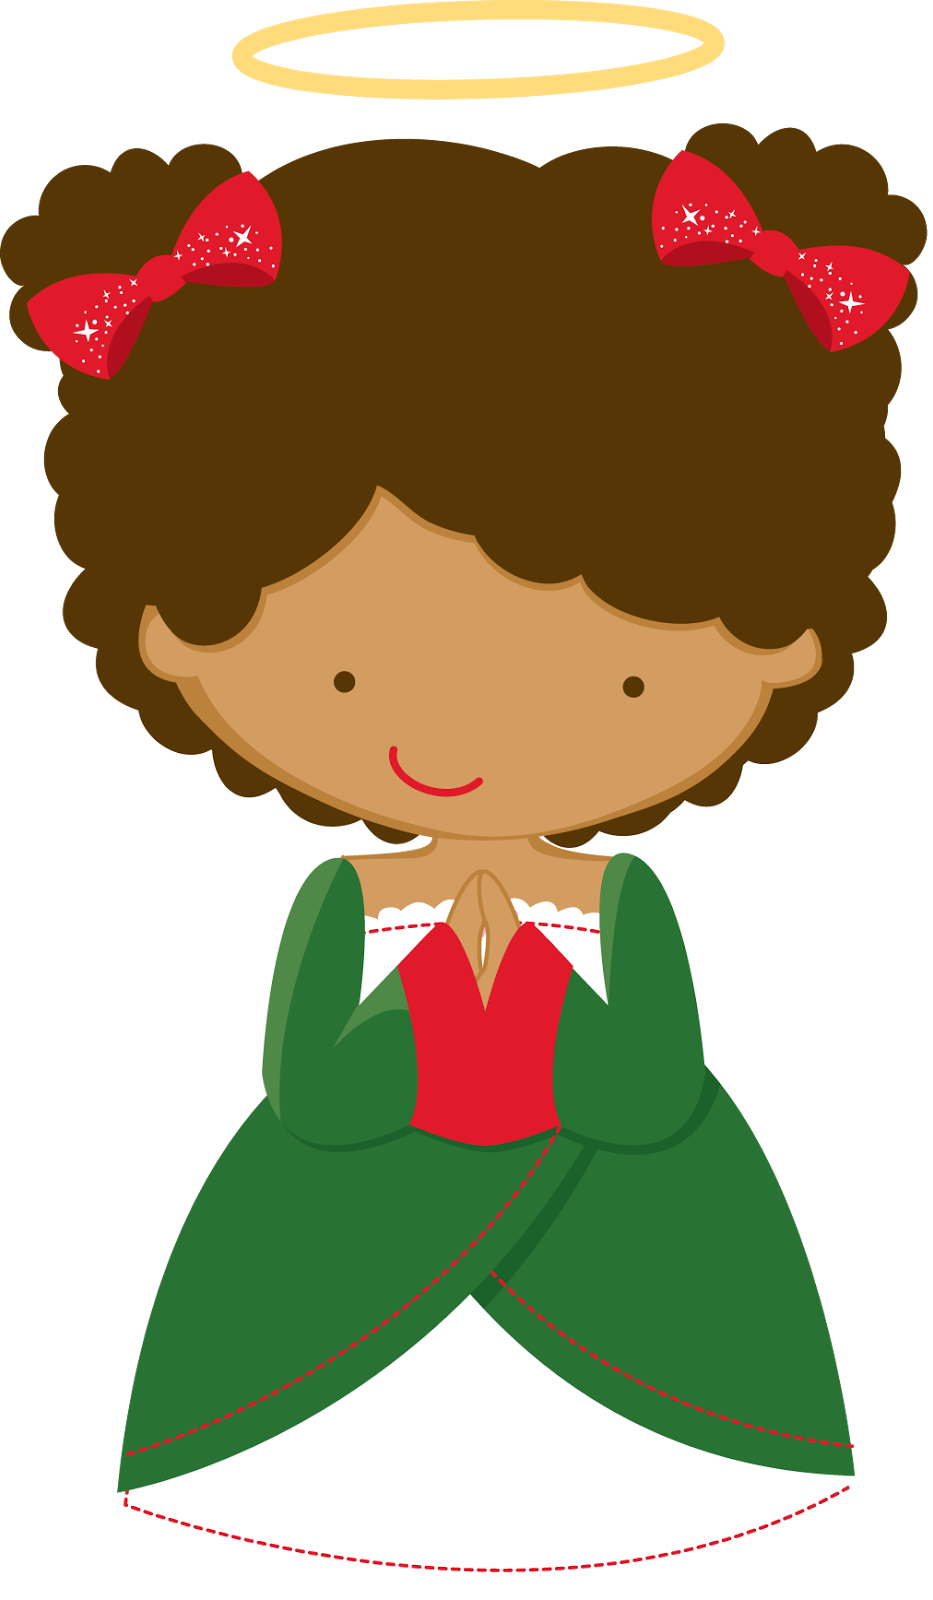 Snowball clipart winter carnival. Natal personagens child pinterest